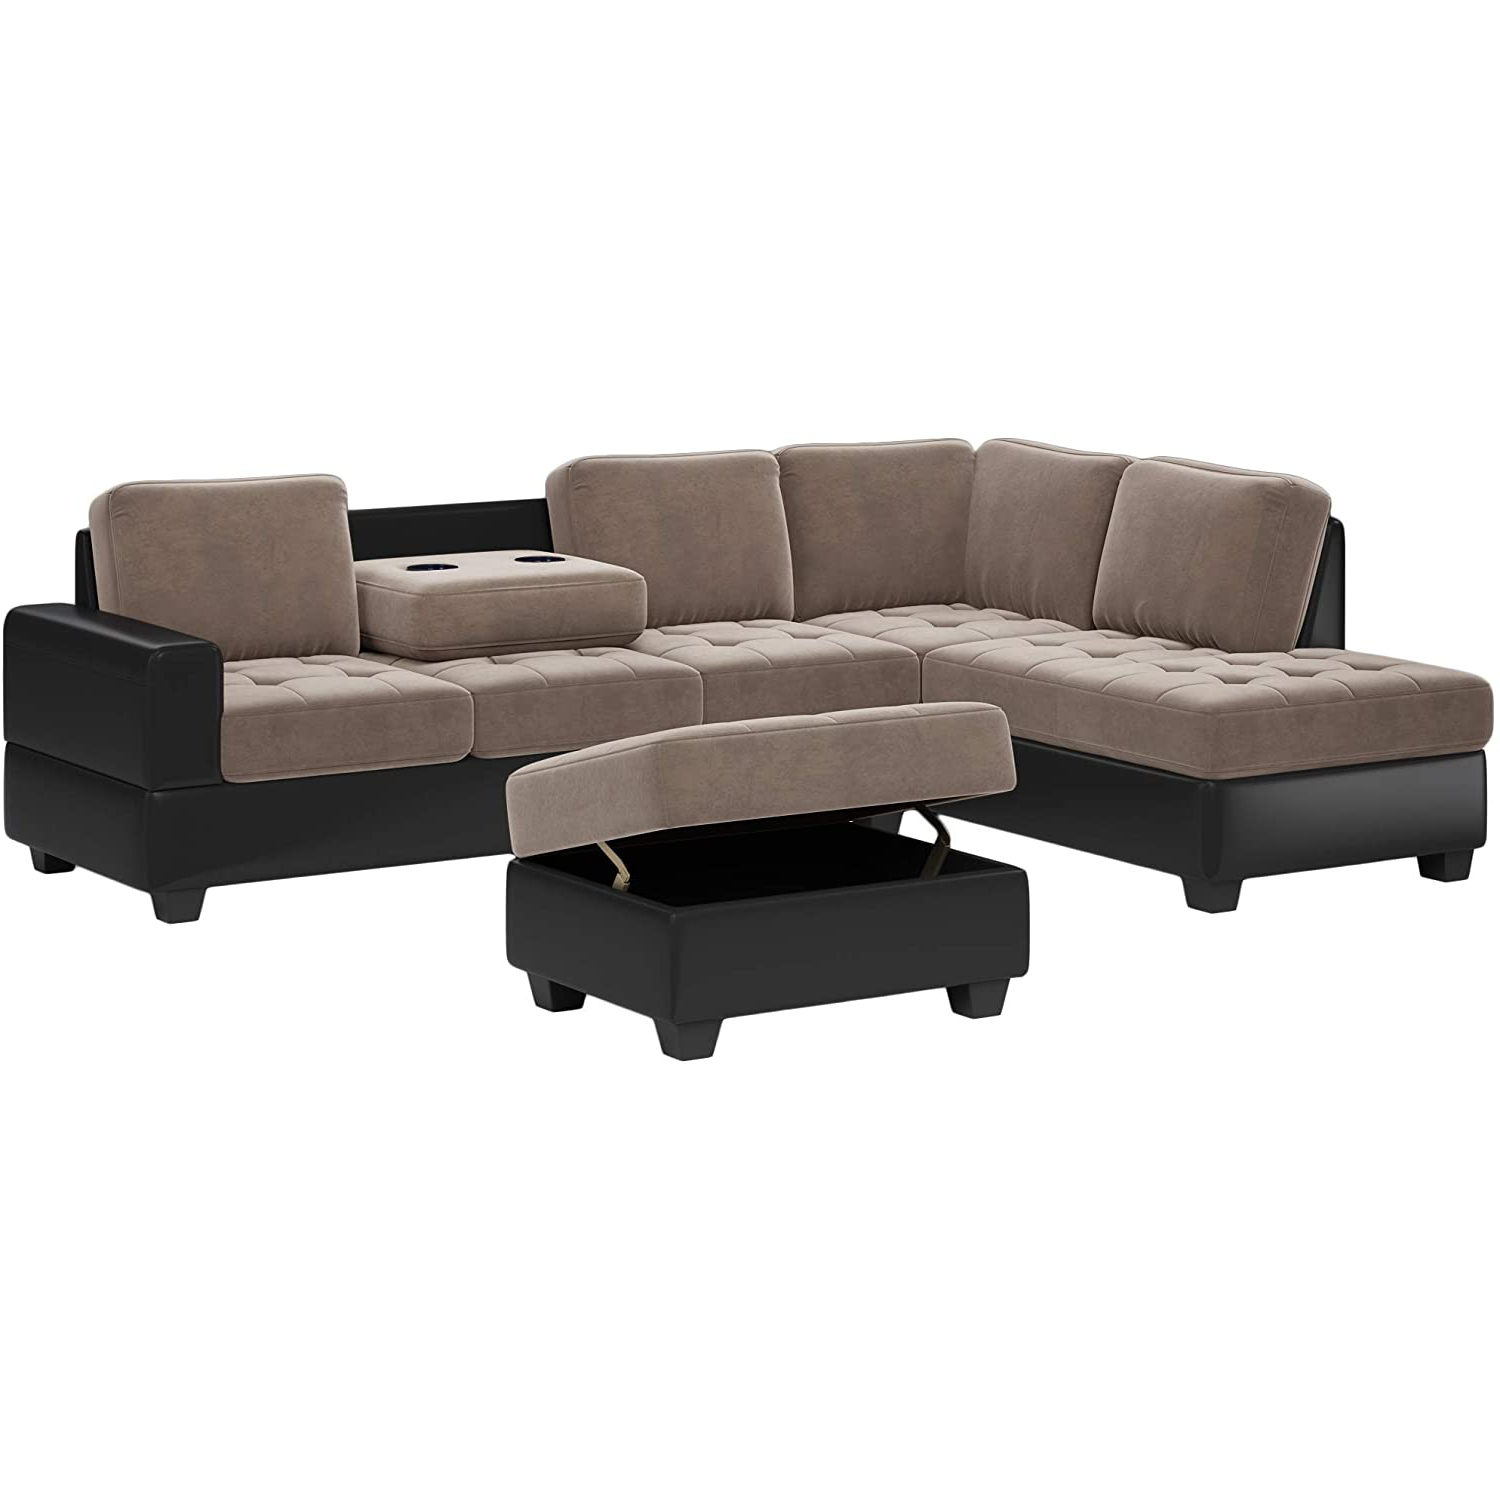 Preferred Copenhagen Reversible Small Space Sectional Sofas With Storage Inside Amazon: Convertible Sectional Sofa, L Shape Couch With (View 19 of 25)